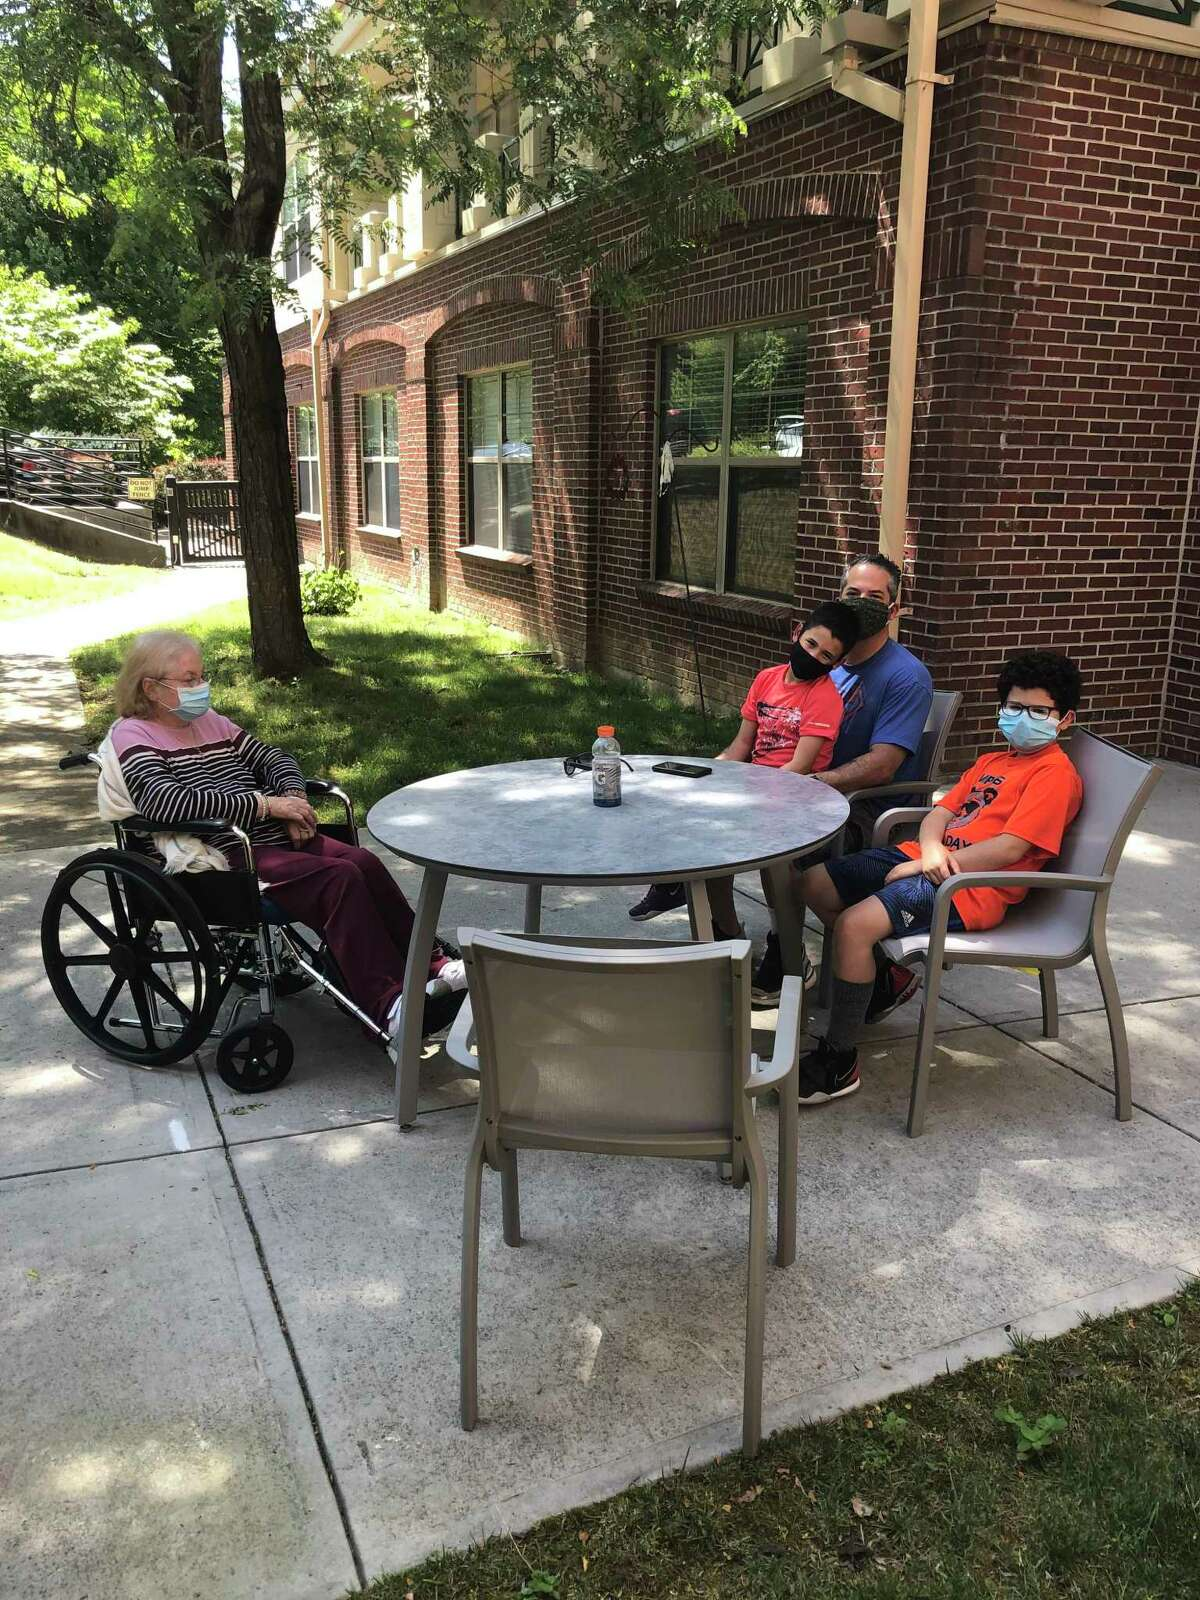 Residents at the Laurel Ridge Health Care Center in Ridgefield began welcoming back visitors and resuming communal activities after being hard hit by COVID-19.